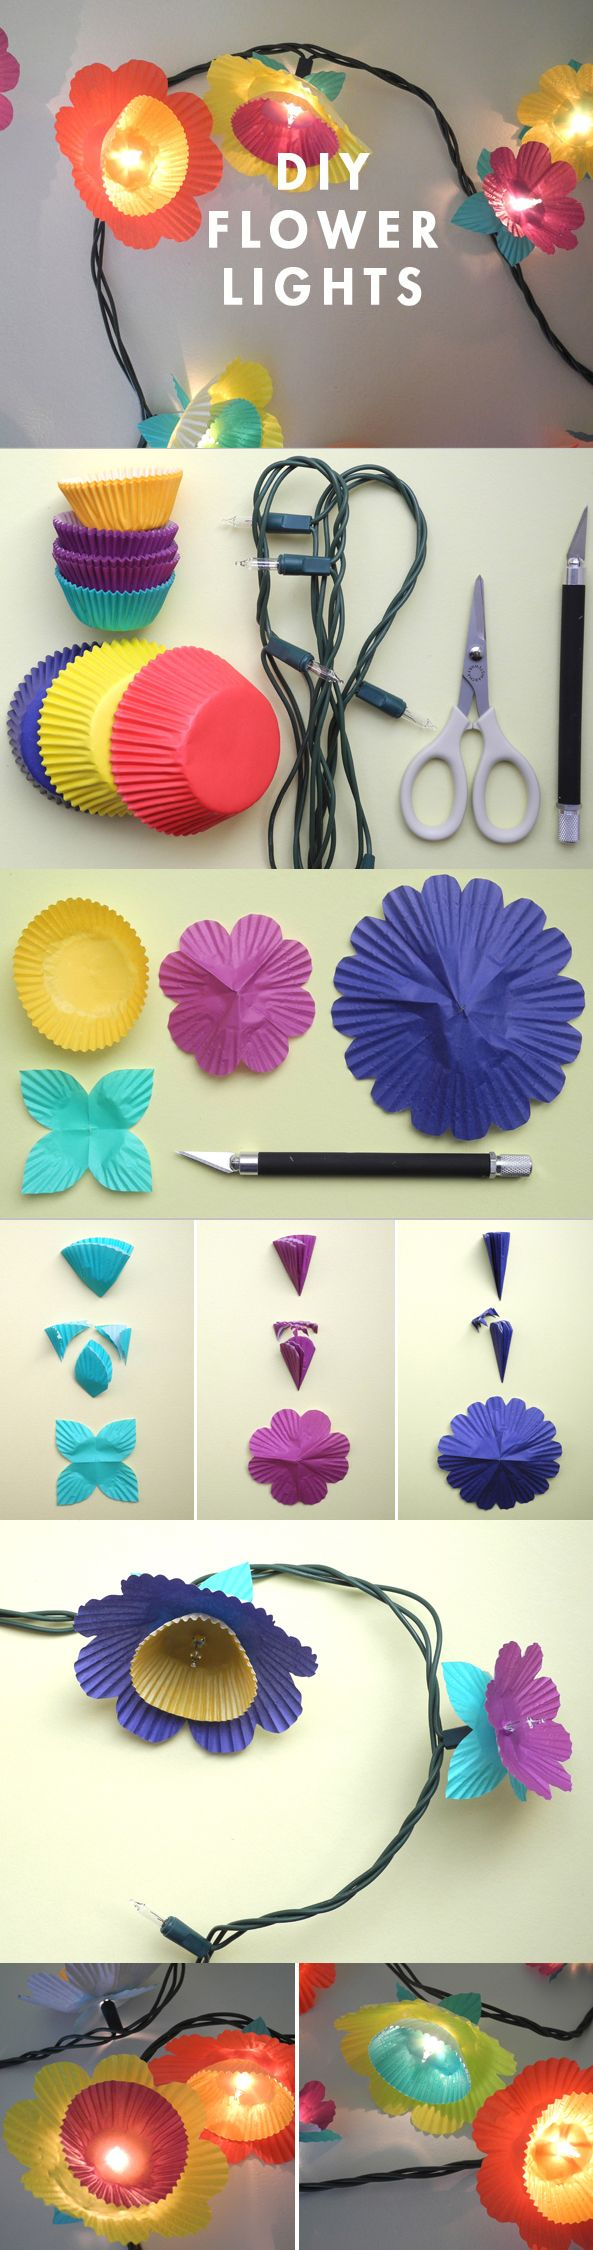 cupcake liner flower lights: Idea, Diy'S, Cupcake Paper, Flower Lights, Paper Flower, Art, Diy Craft